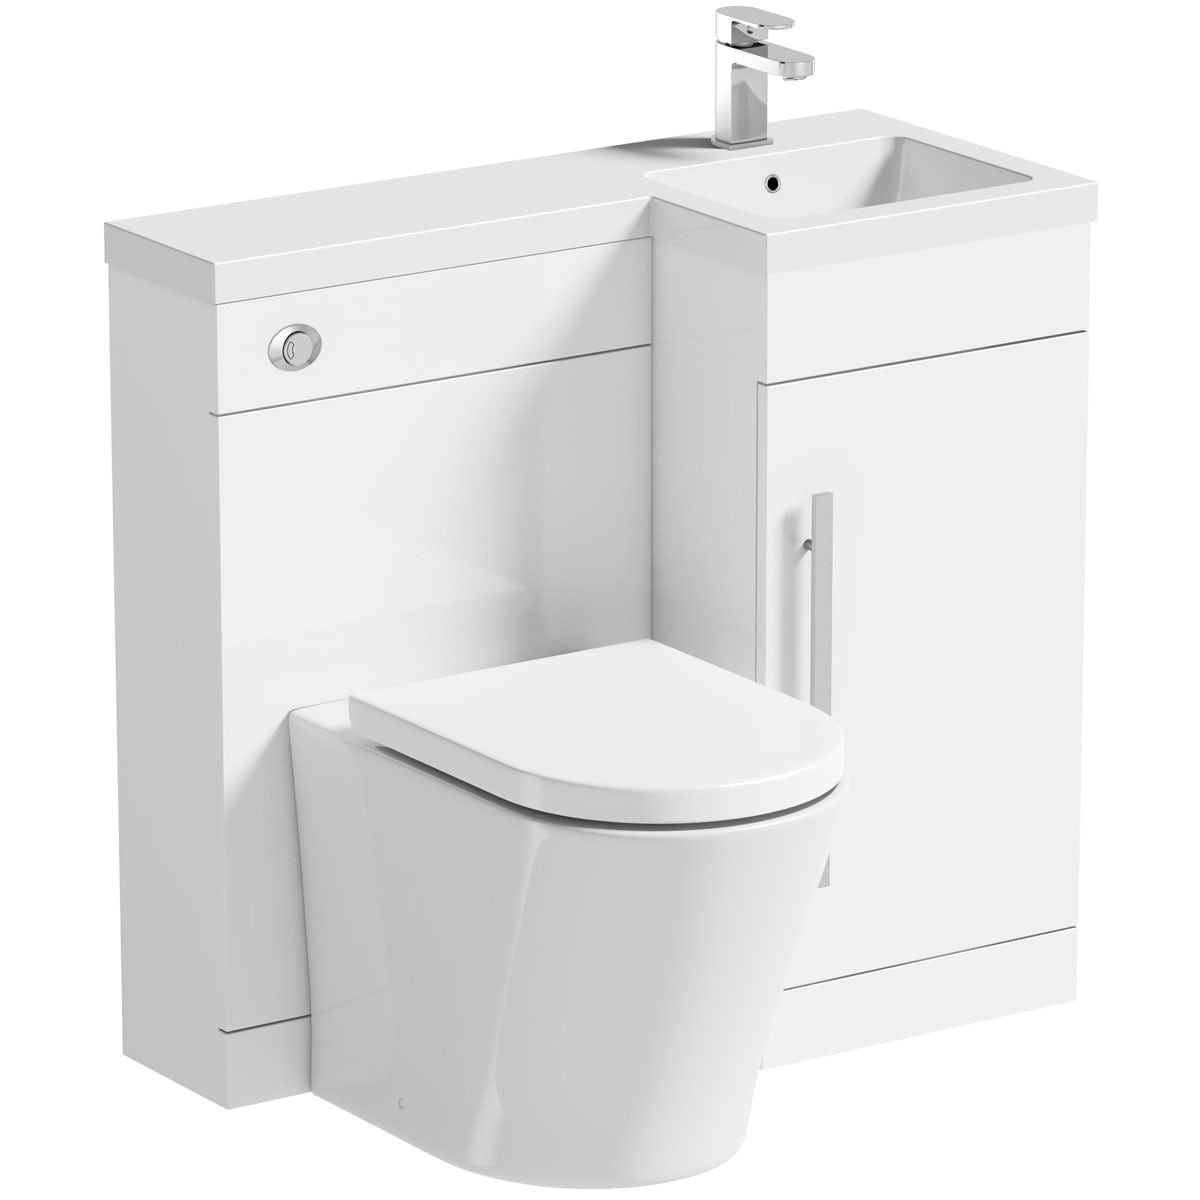 Orchard Myspace White Right Handed Unit With Contemporary